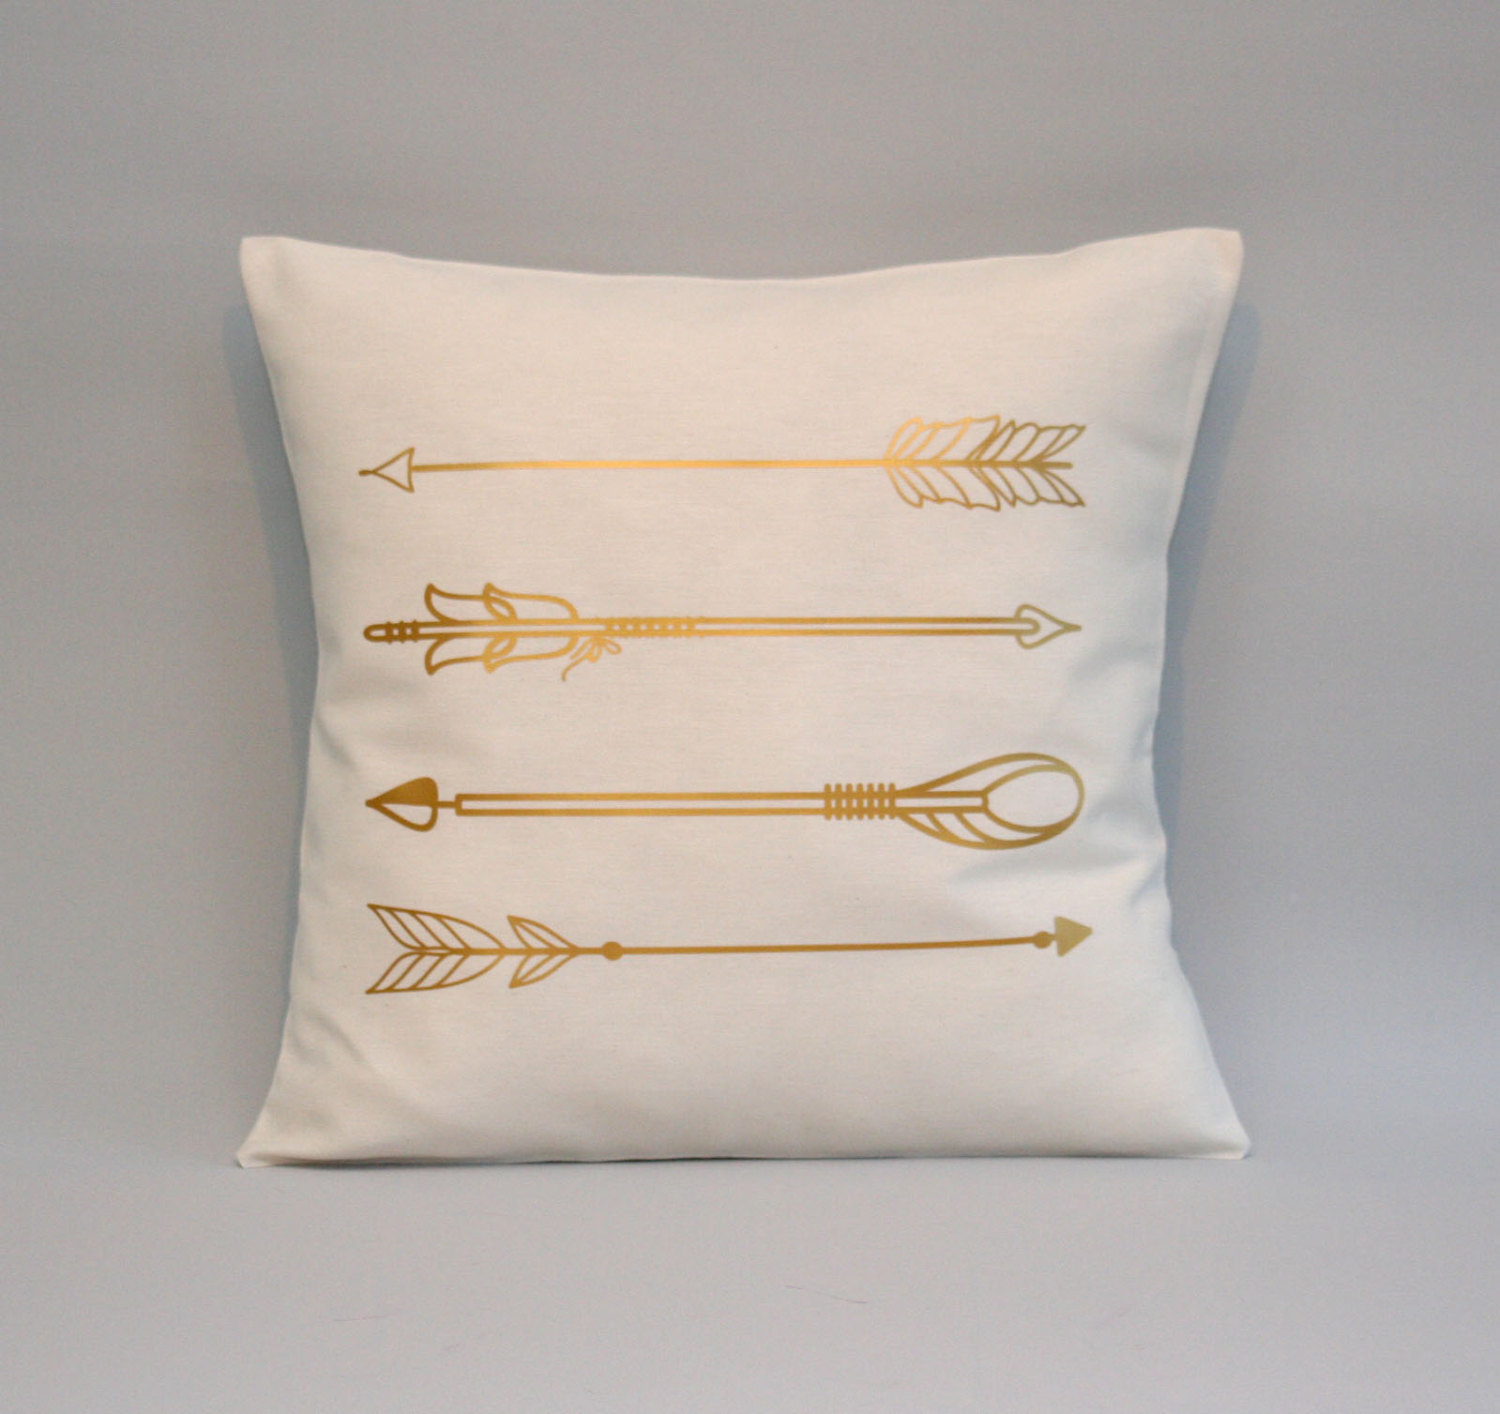 Plaid Throw Pillows | Sparkle Throw Pillows | Gold Throw Pillows